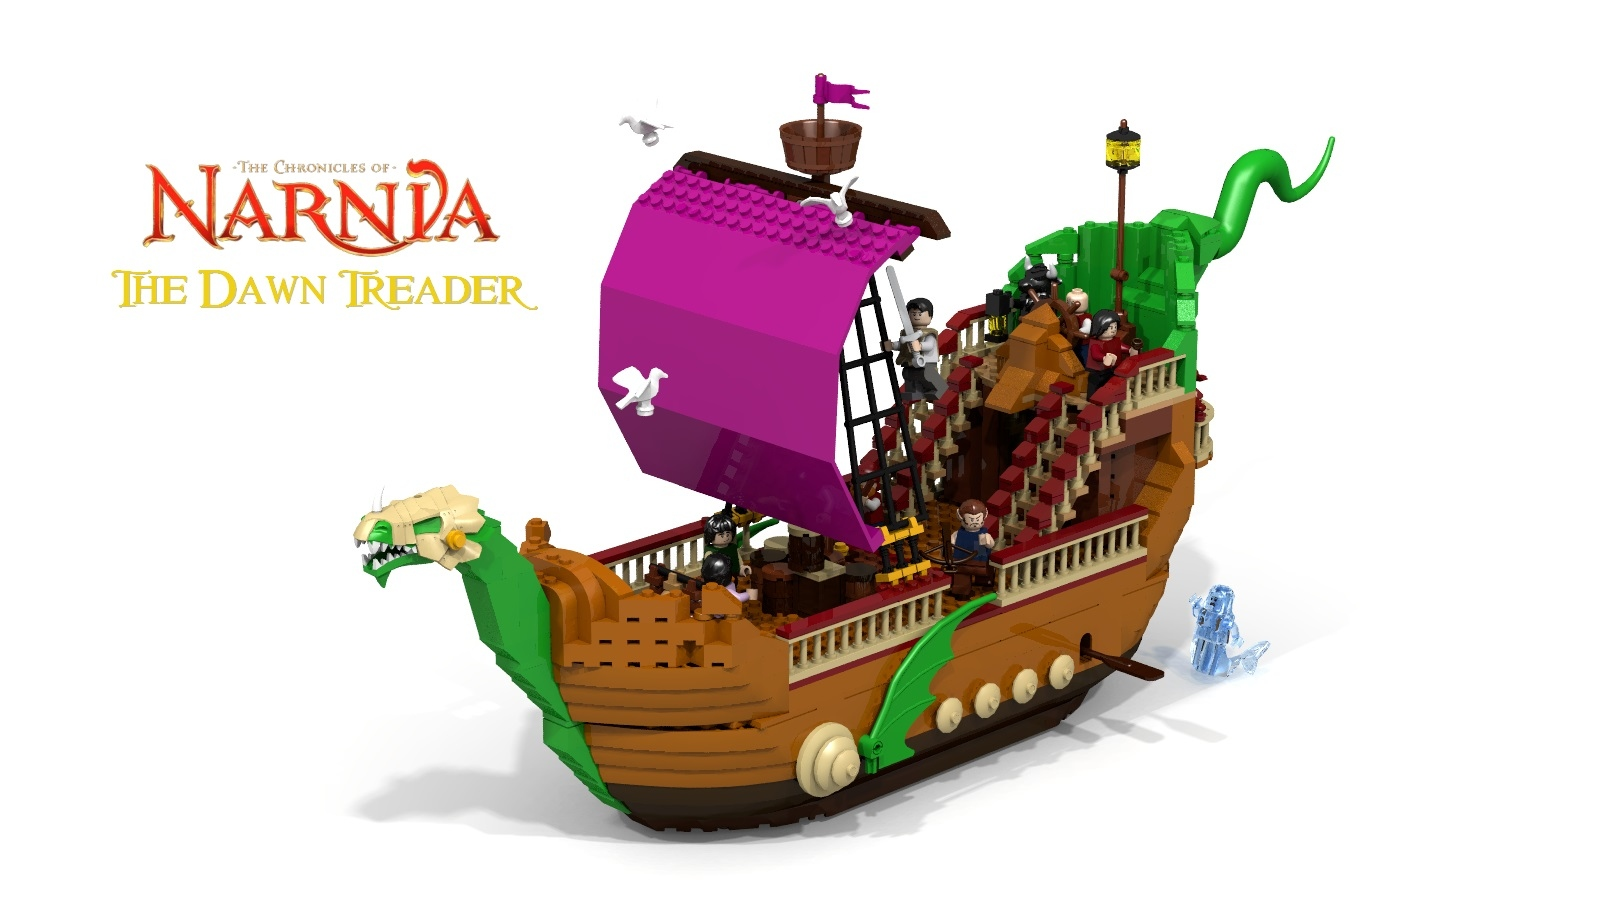 lego ideas product ideas narnia the dawn treader